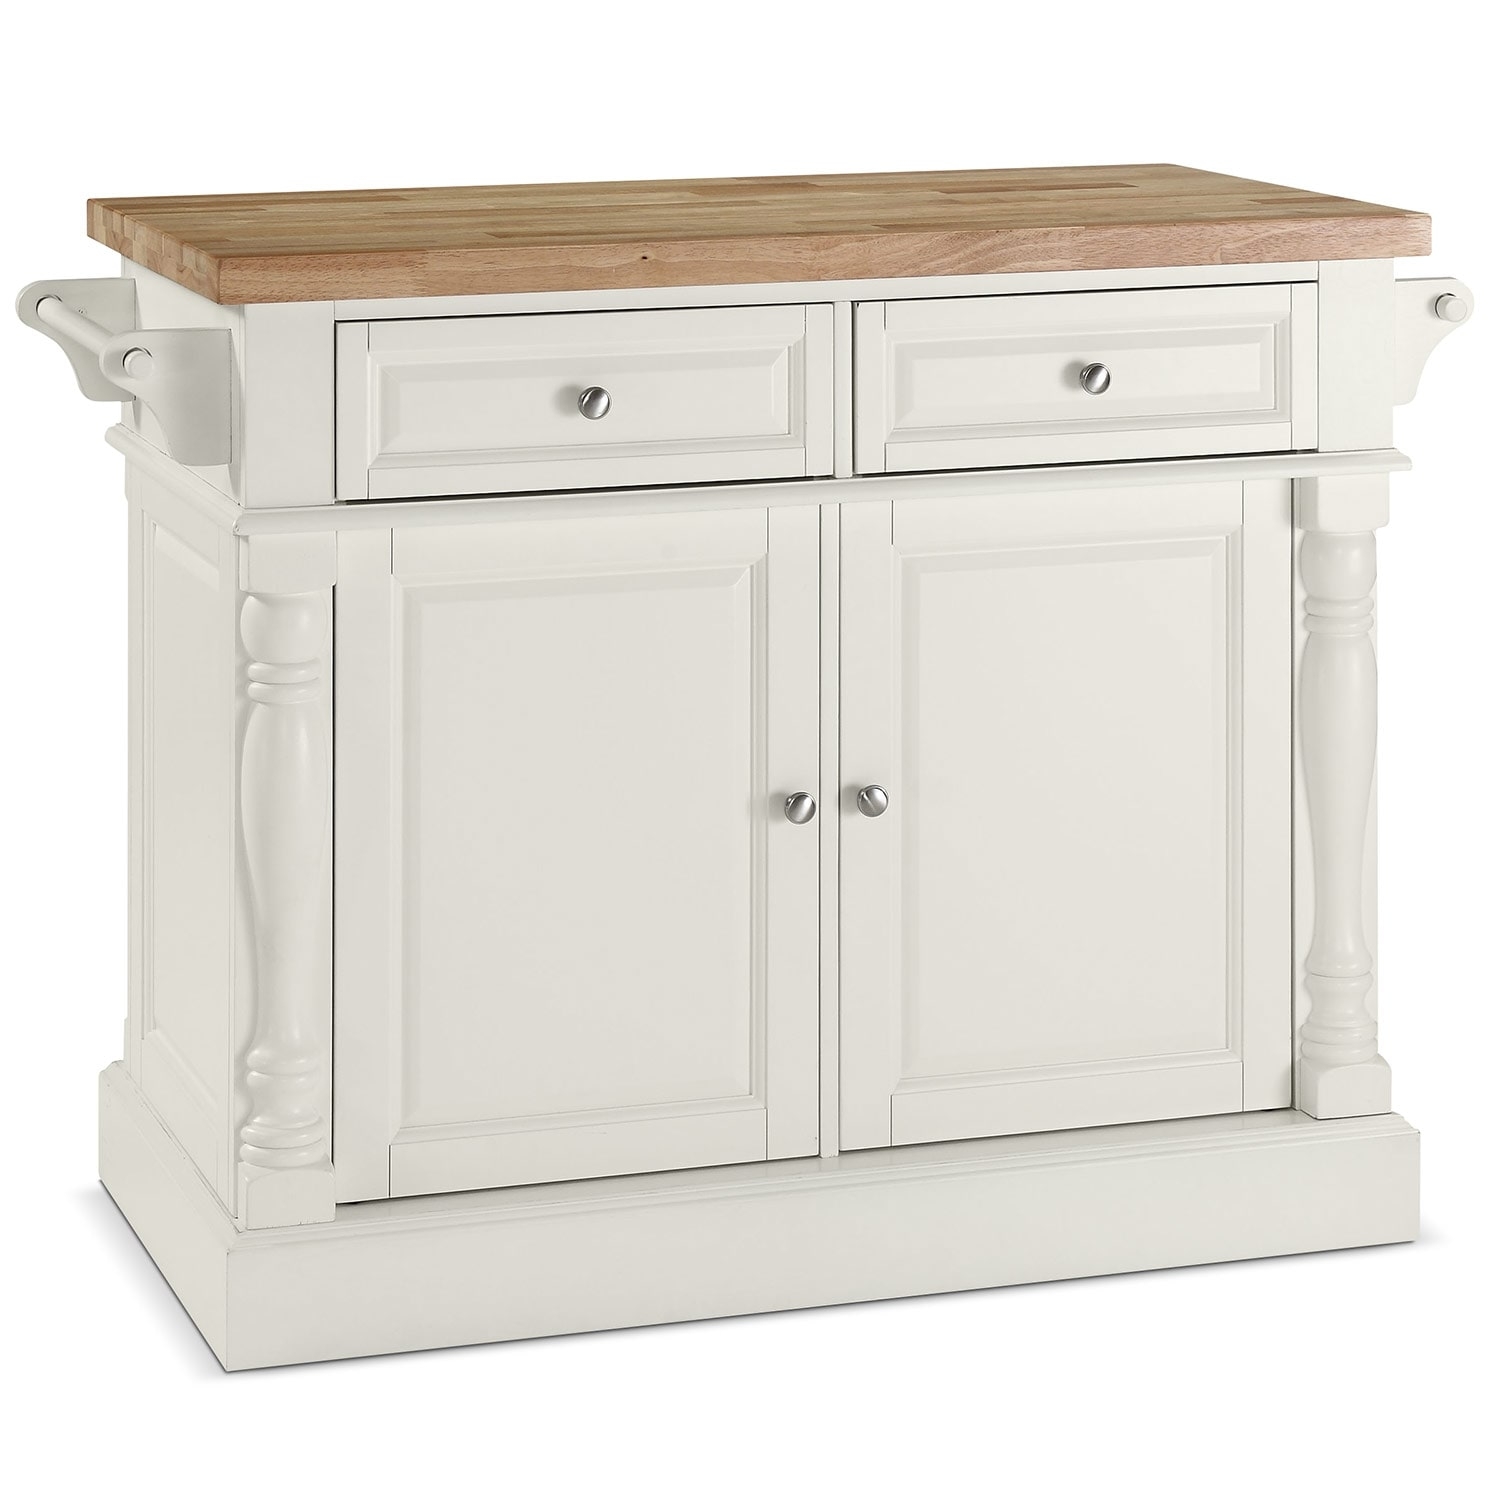 Griffin Kitchen Island - White